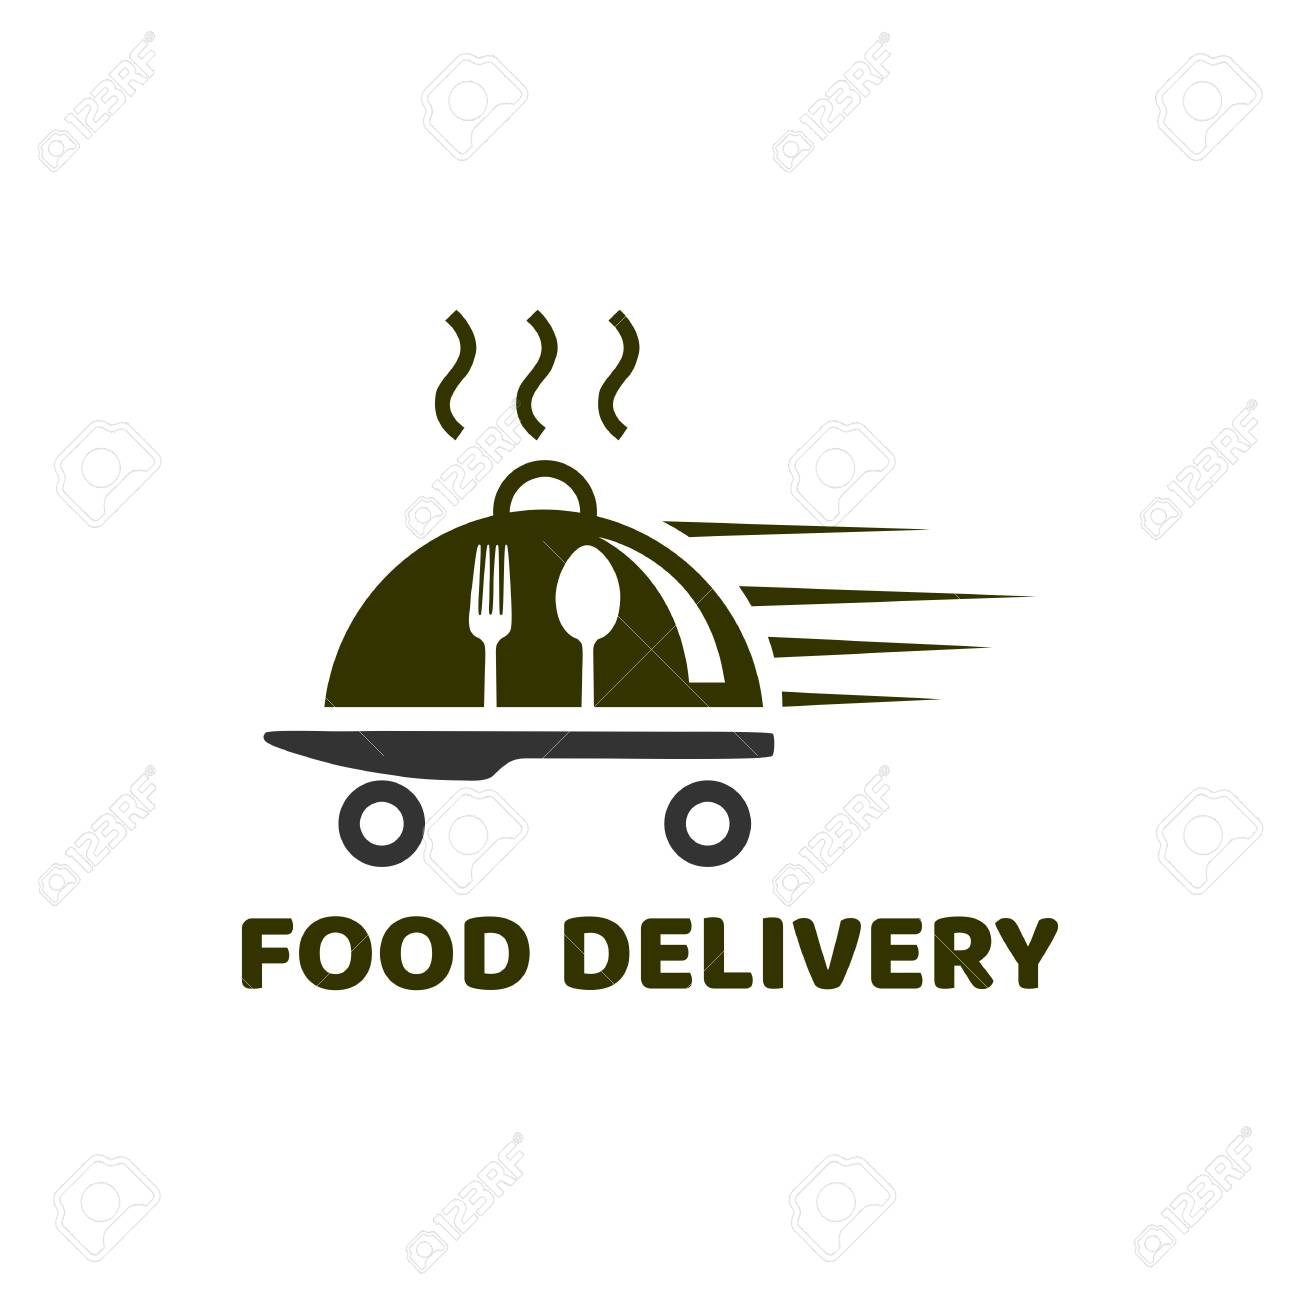 Food Delivery logo - 94315720